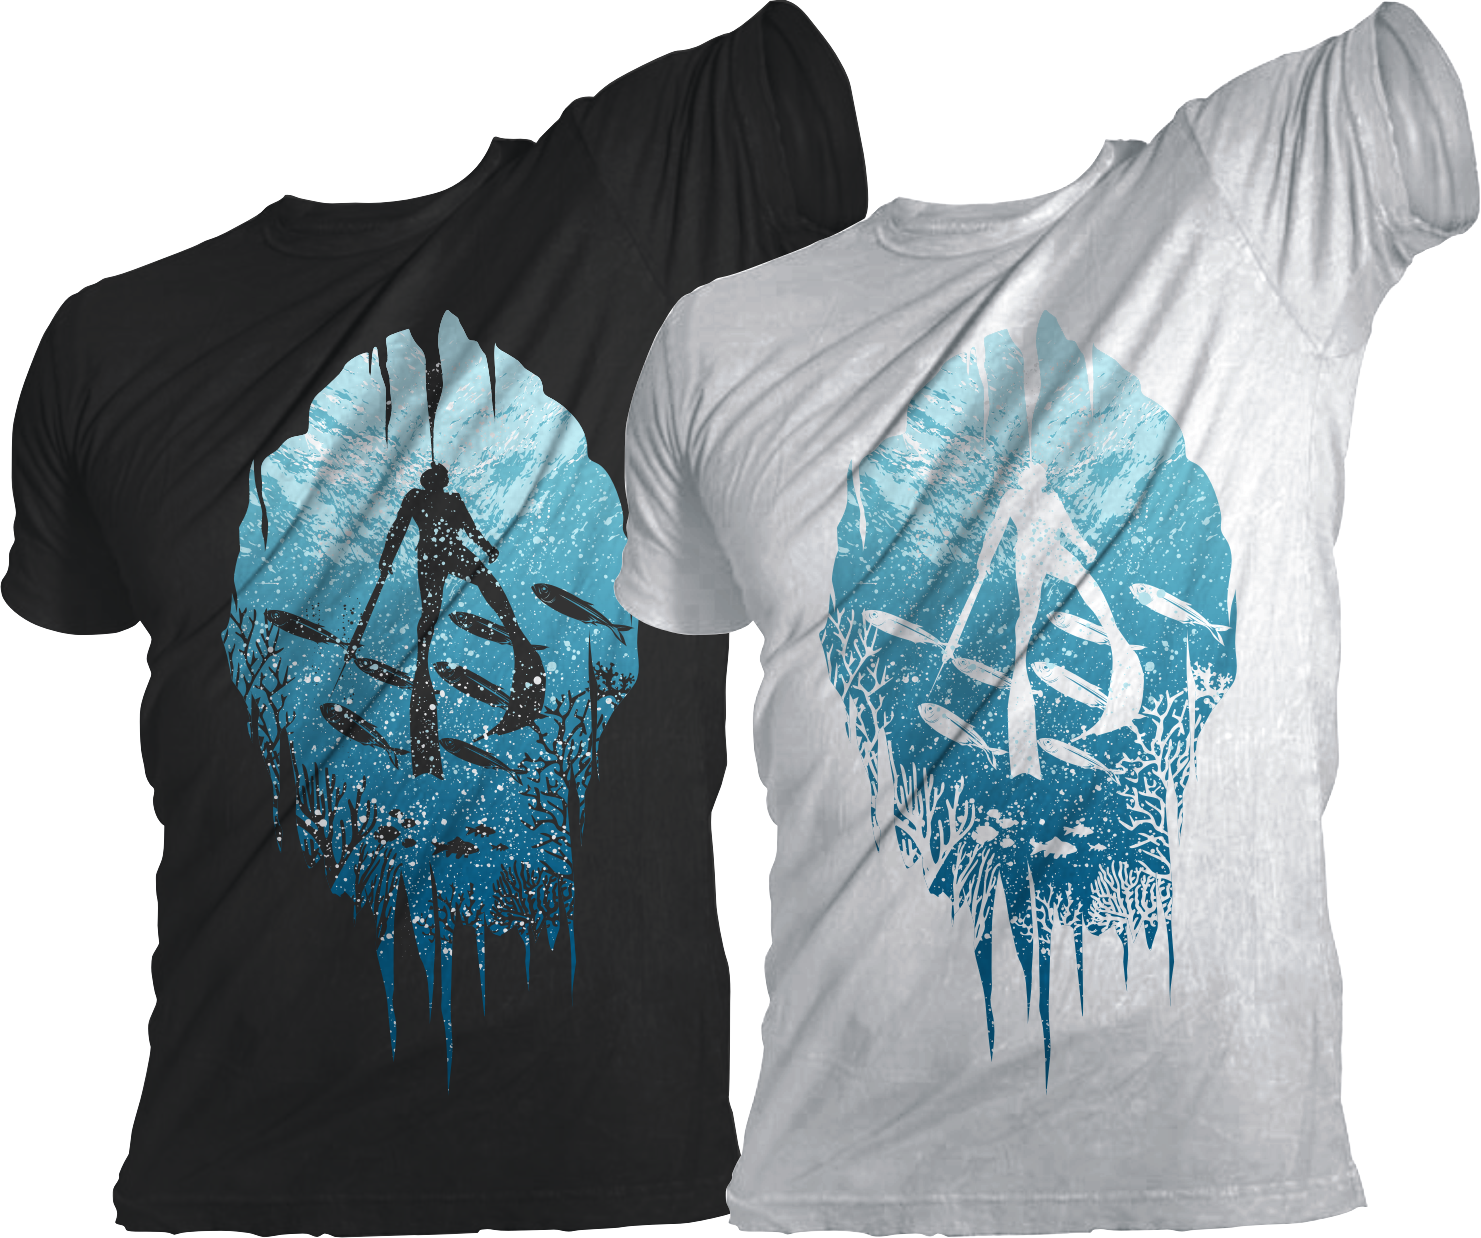 Free t-shirt design - T Shirt Design By Jhep For Design Shirt And Free Diving And Spearfishing Design